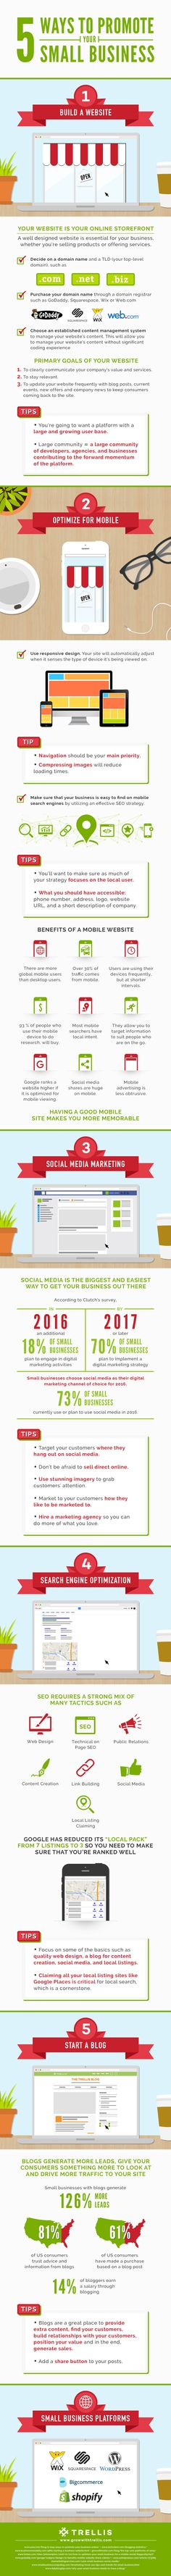 5_ways_to_promote_your_small_business_final